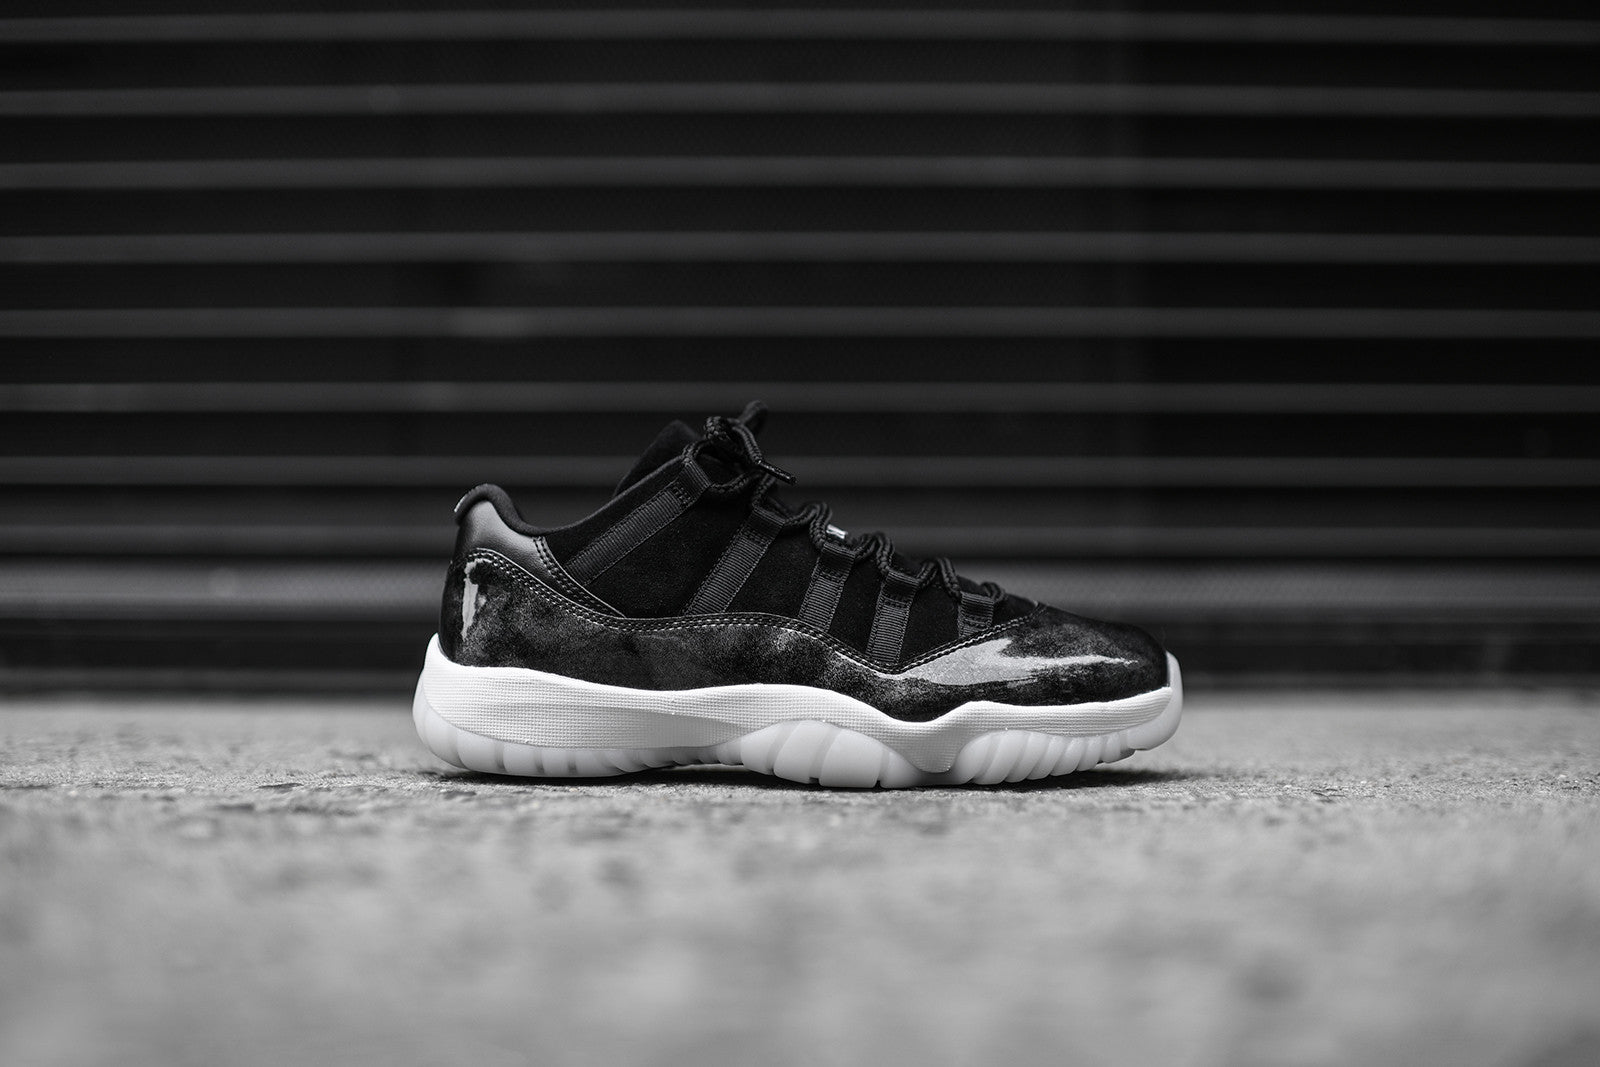 Nike Air Jordan 11 Retro Low - Black   White   Metallic Silver – Kith 76d2951fc